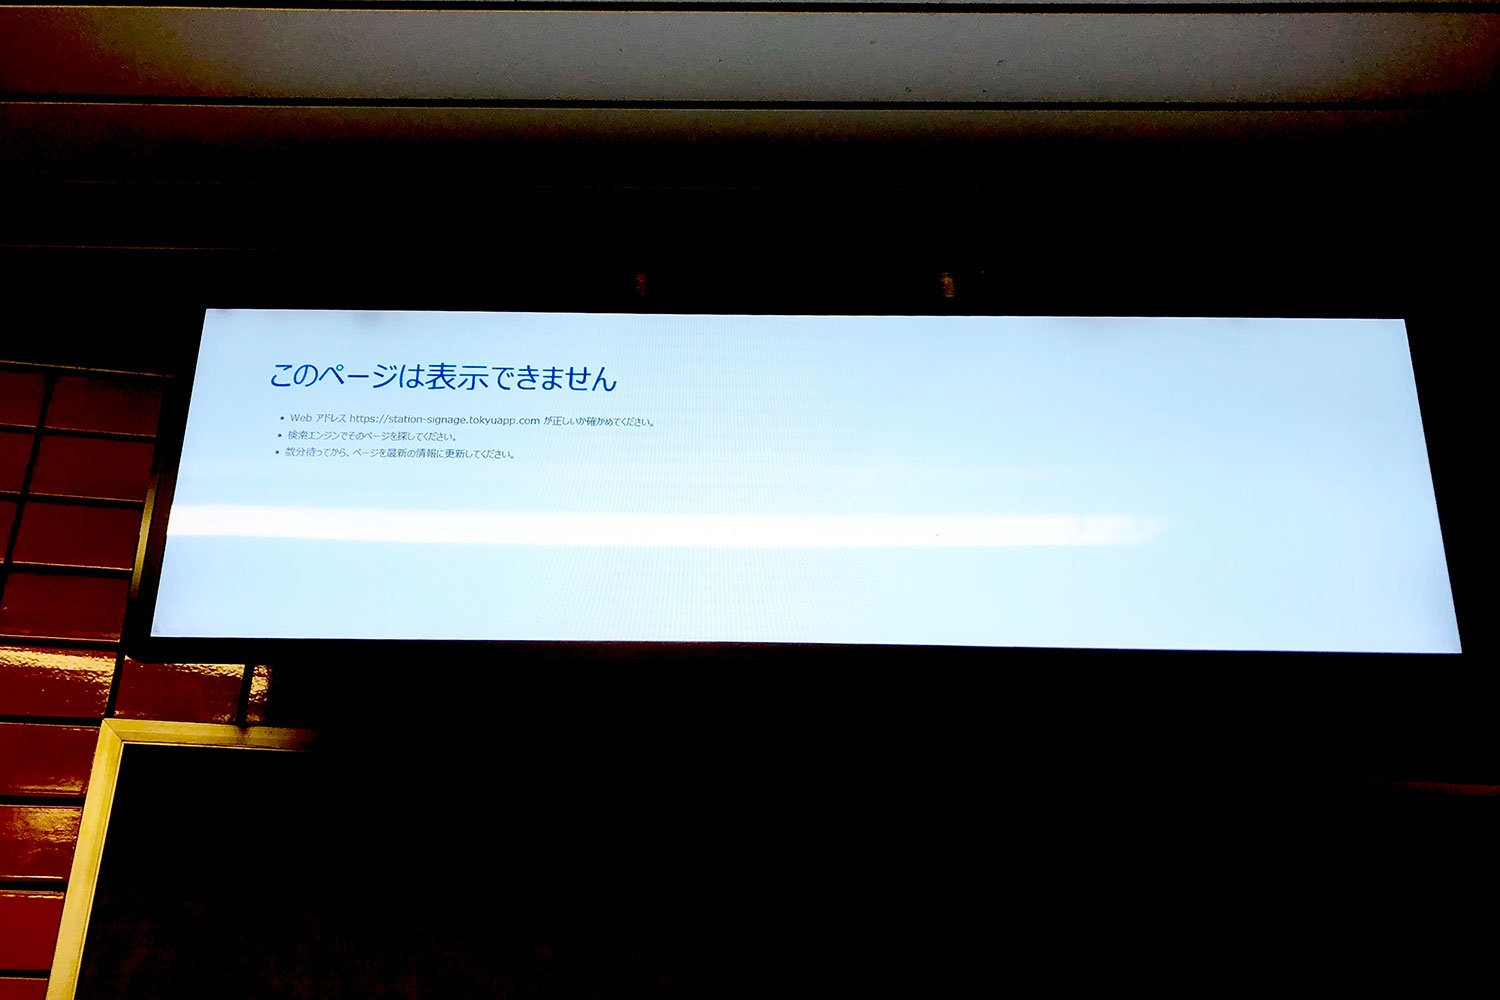 Nothing-found-board《エラー表示板》